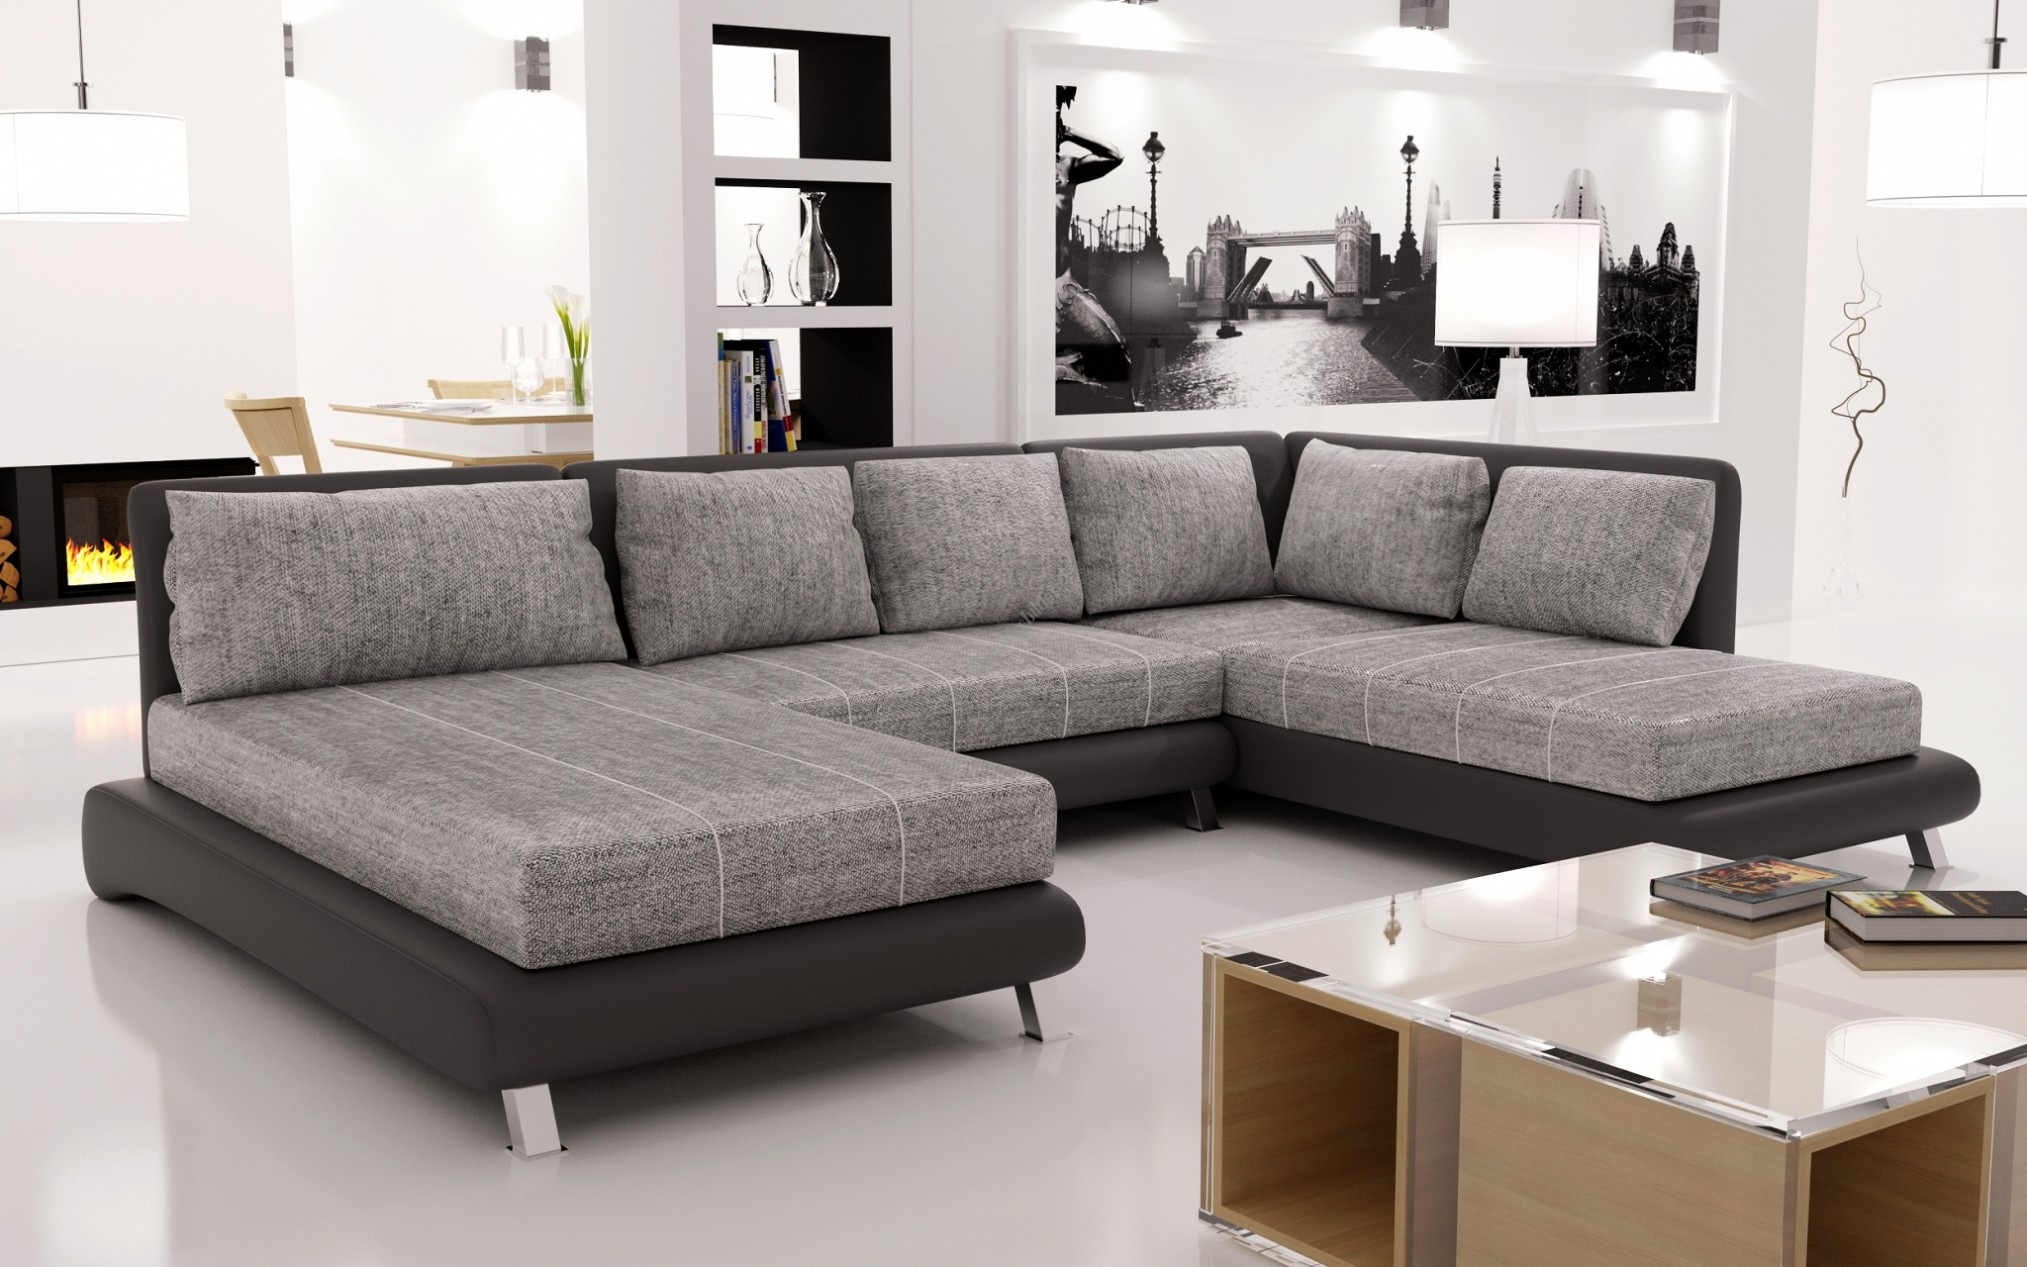 Big Sofa Gebraucht Xxl Couch U Form — Vianova Project